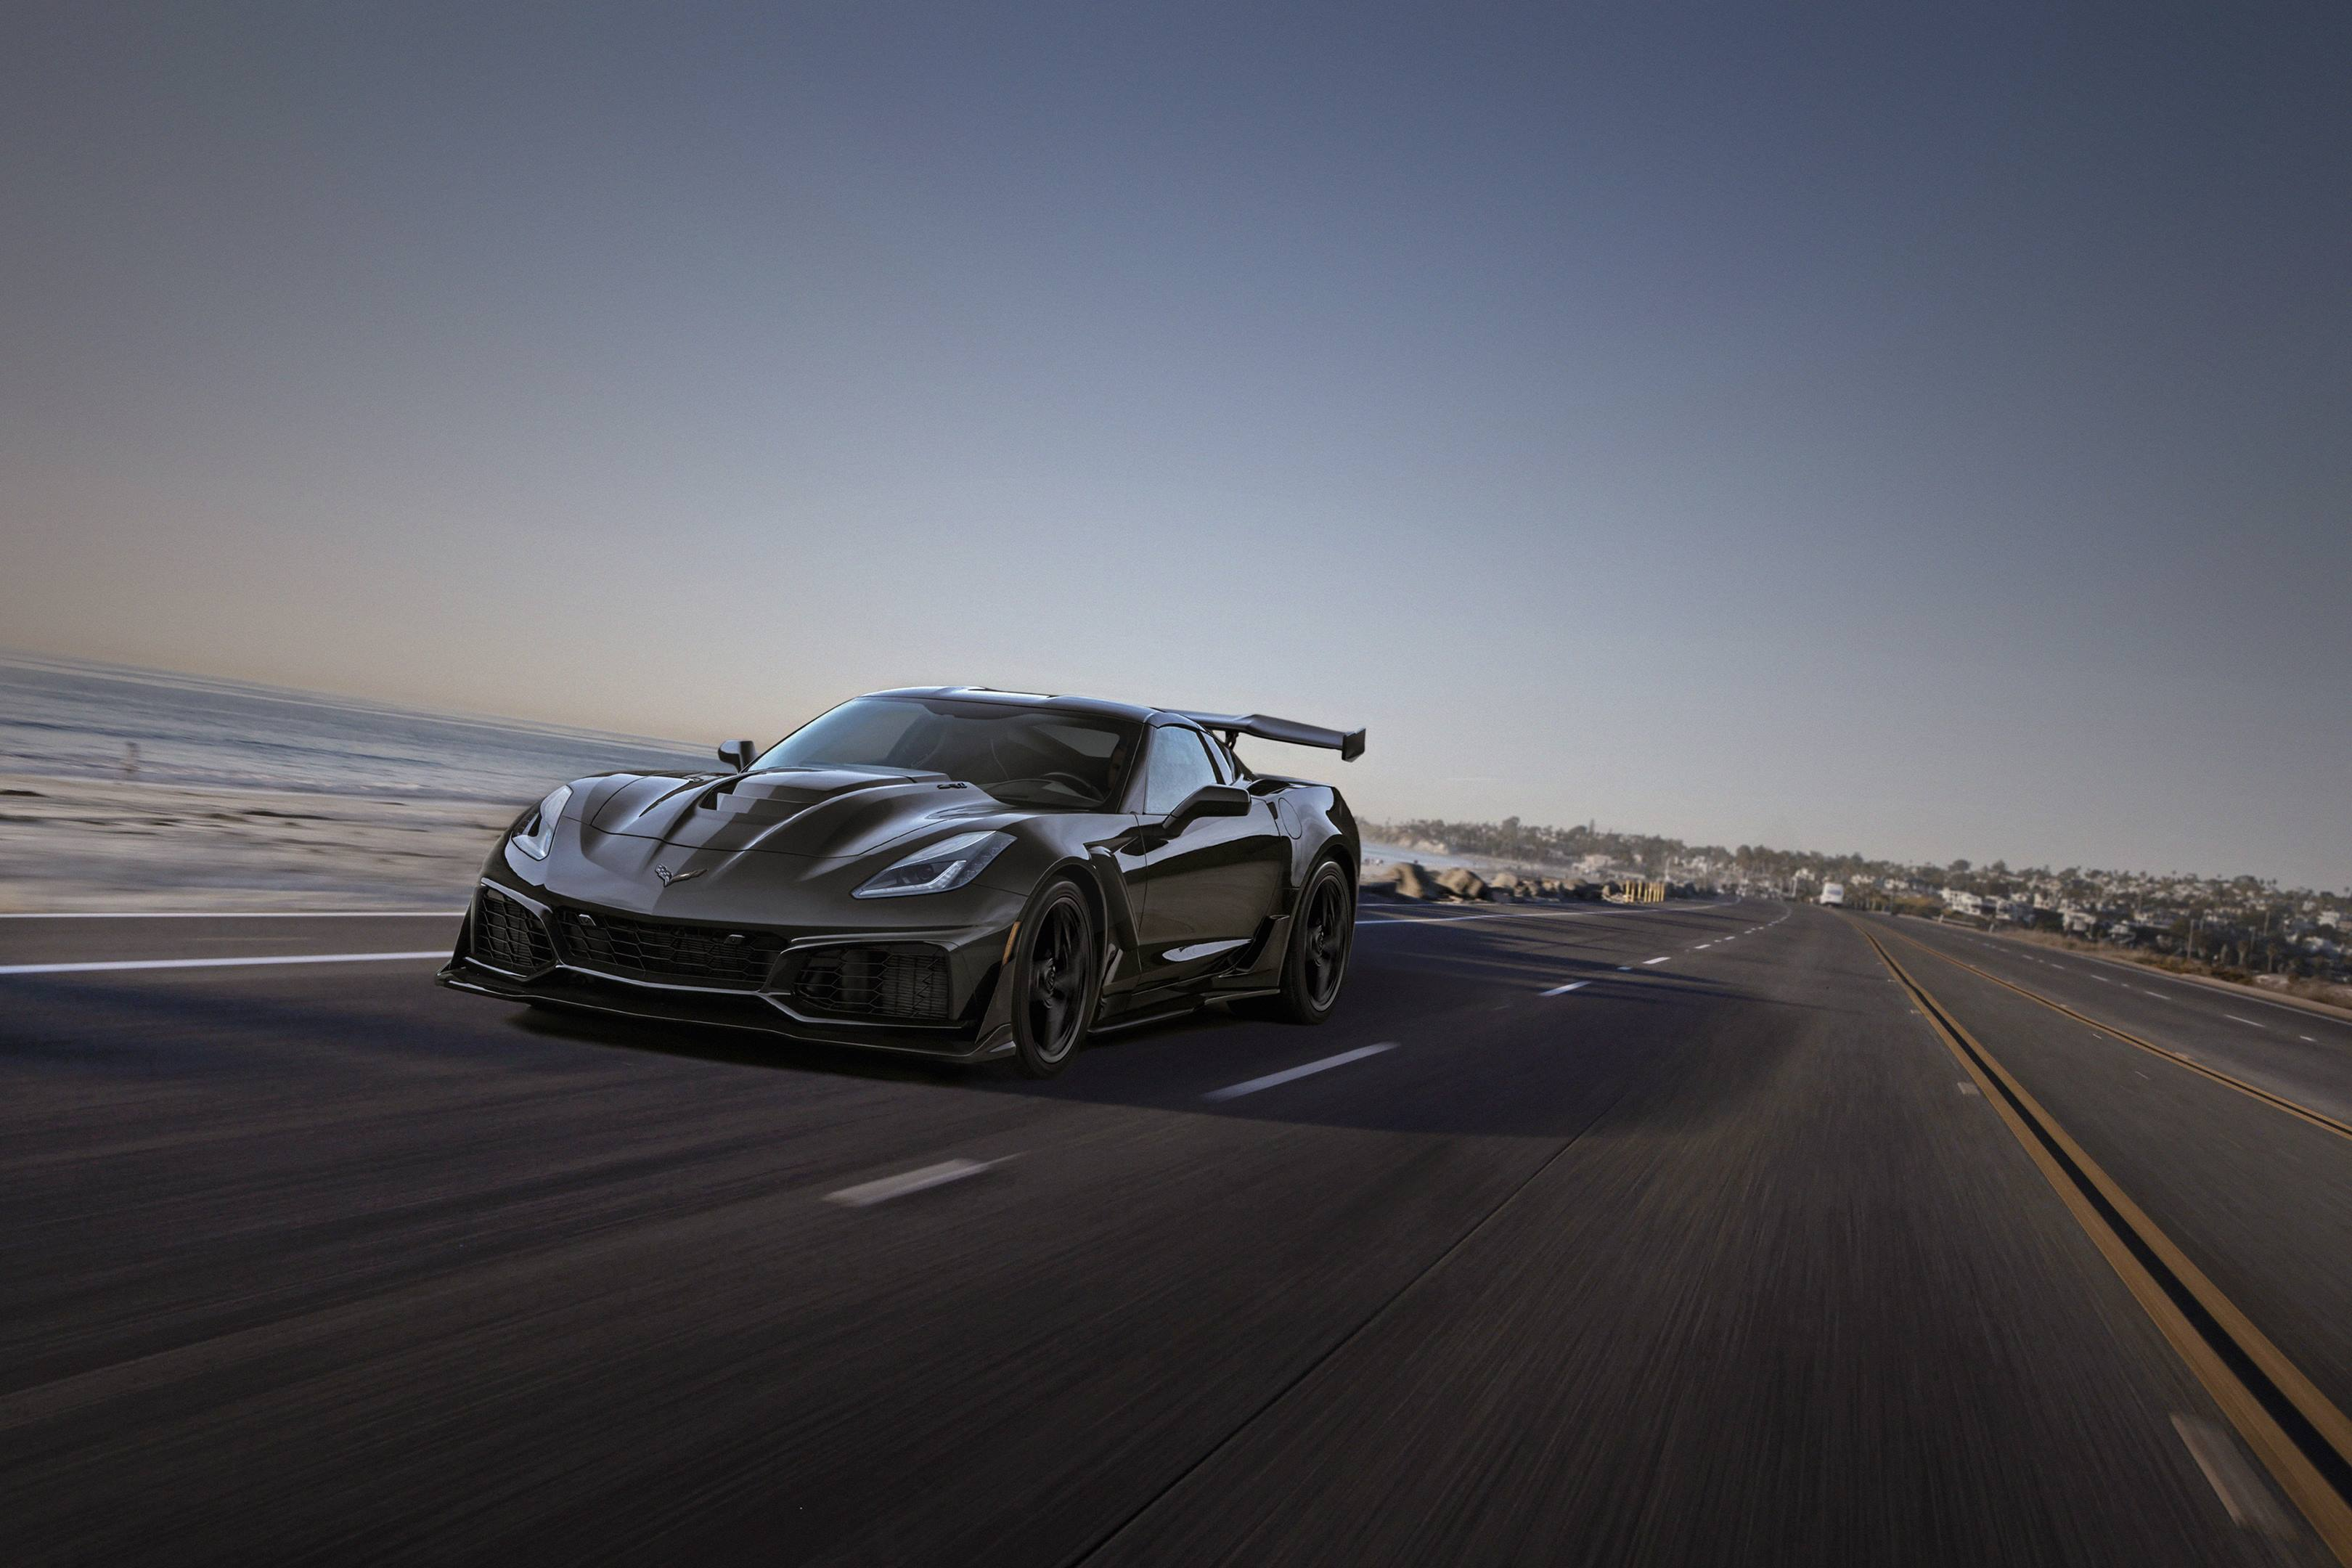 New Corvette ZR1 will do 0-60 in 2.85 seconds thumbnail